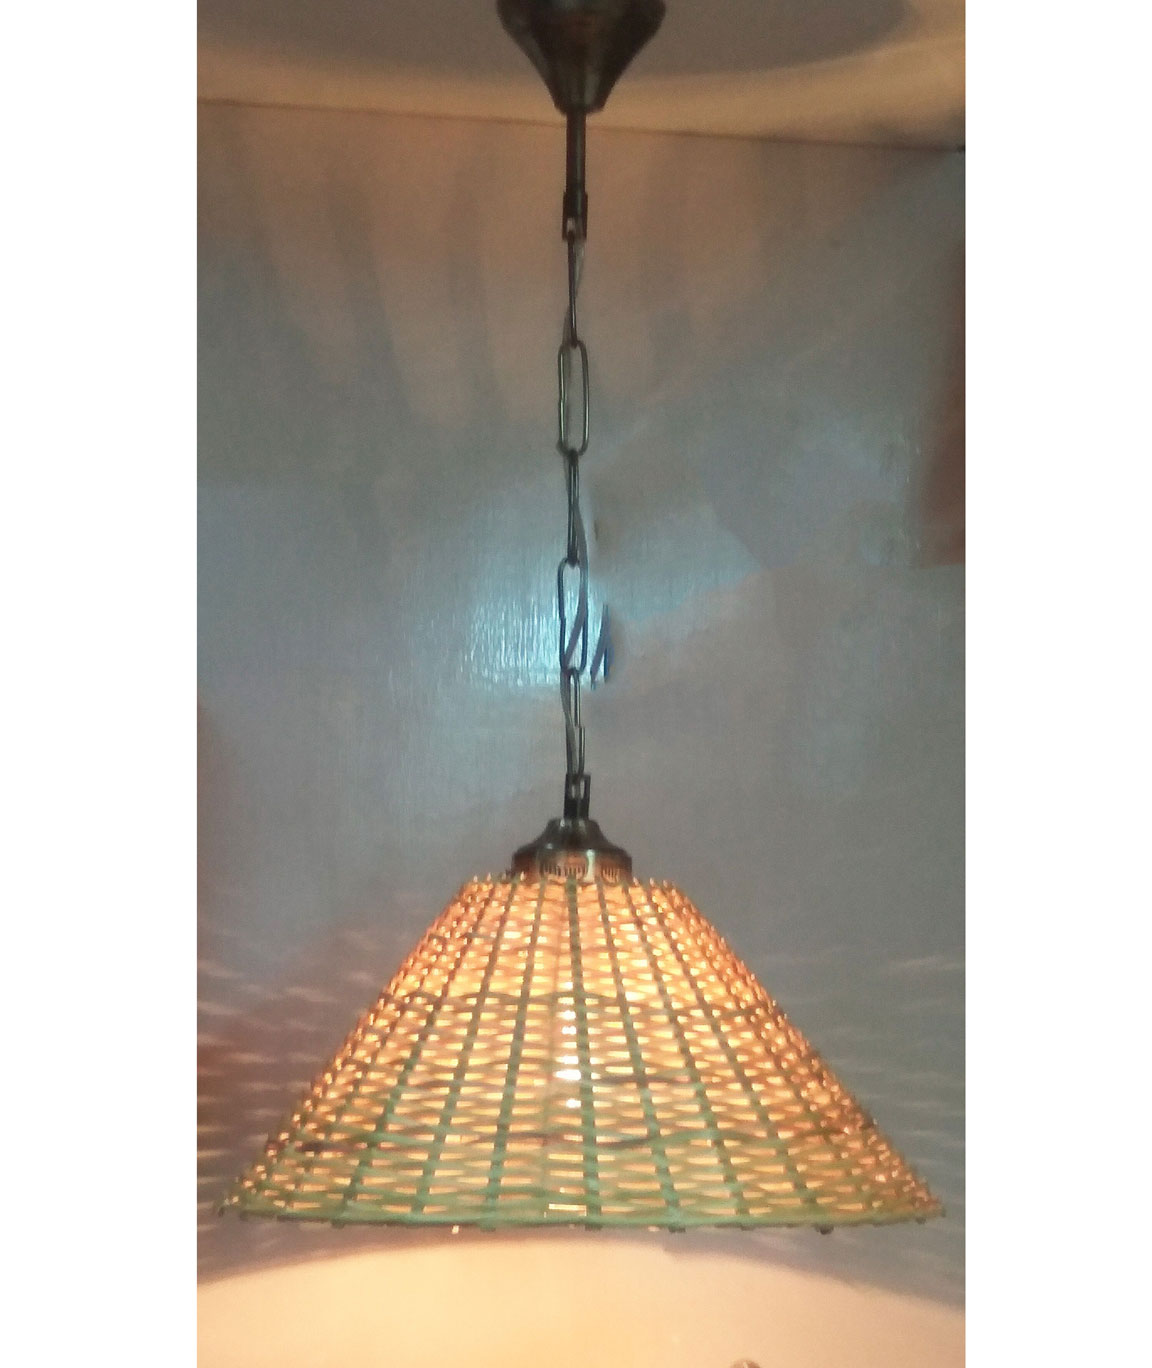 RDC 13 Inches Round Cane Ceiling Hanging Pendant Lamp Shade with Wired Metal Chain